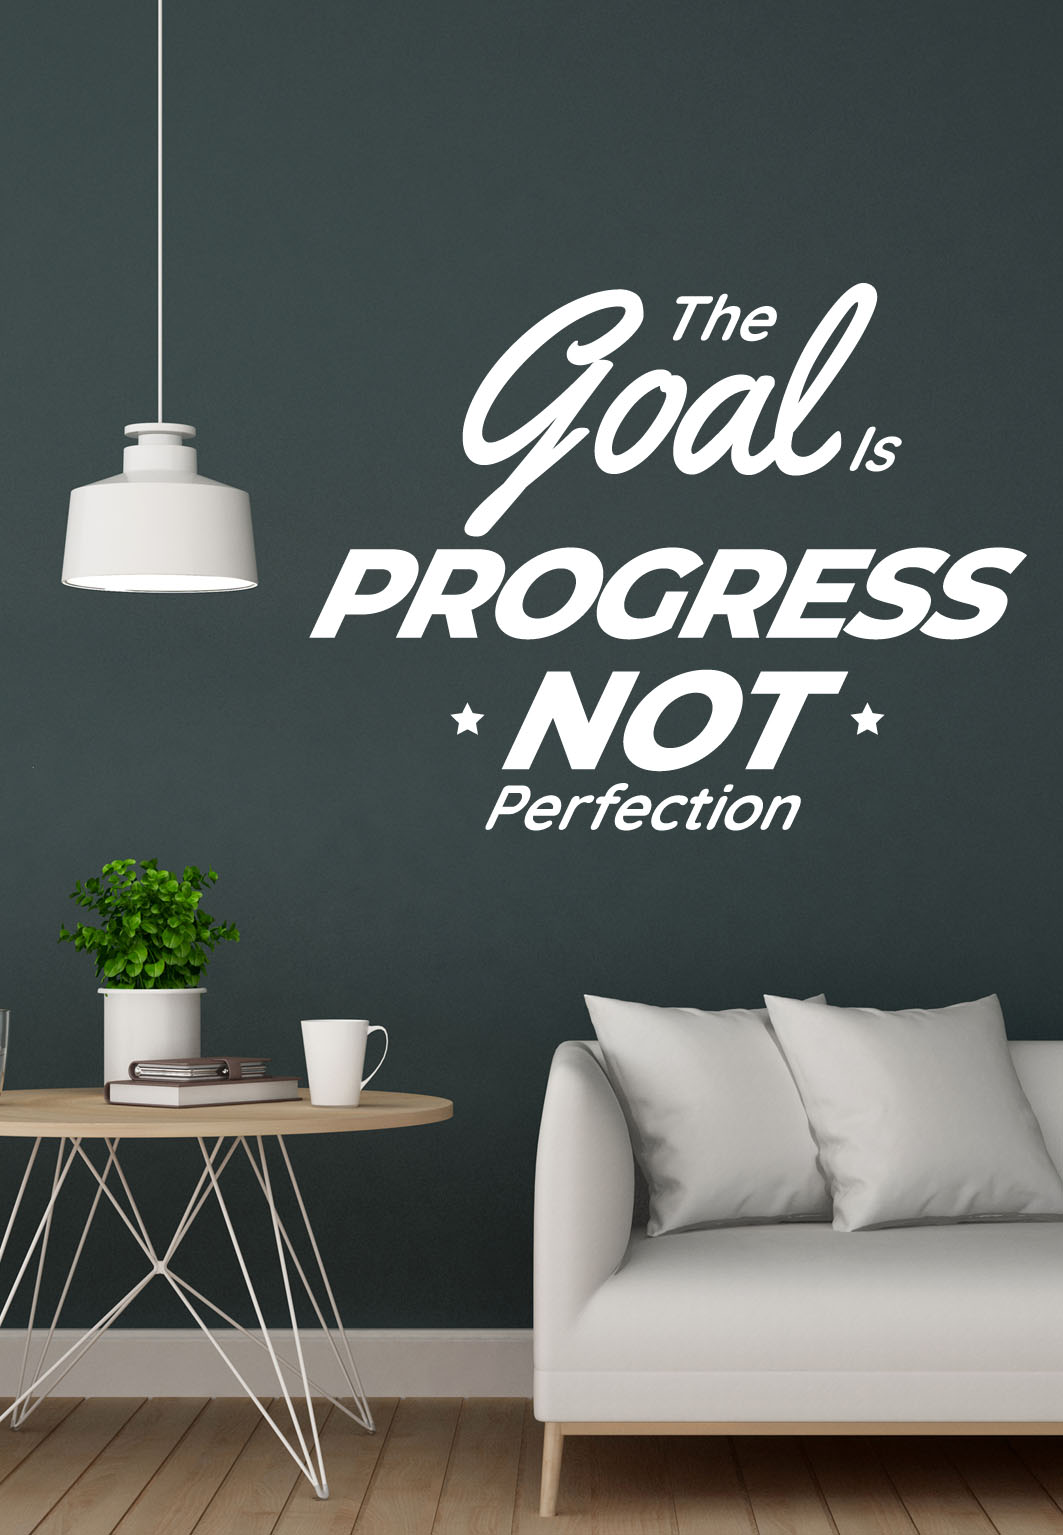 מדבקת קיר - The goal is progress not perfection